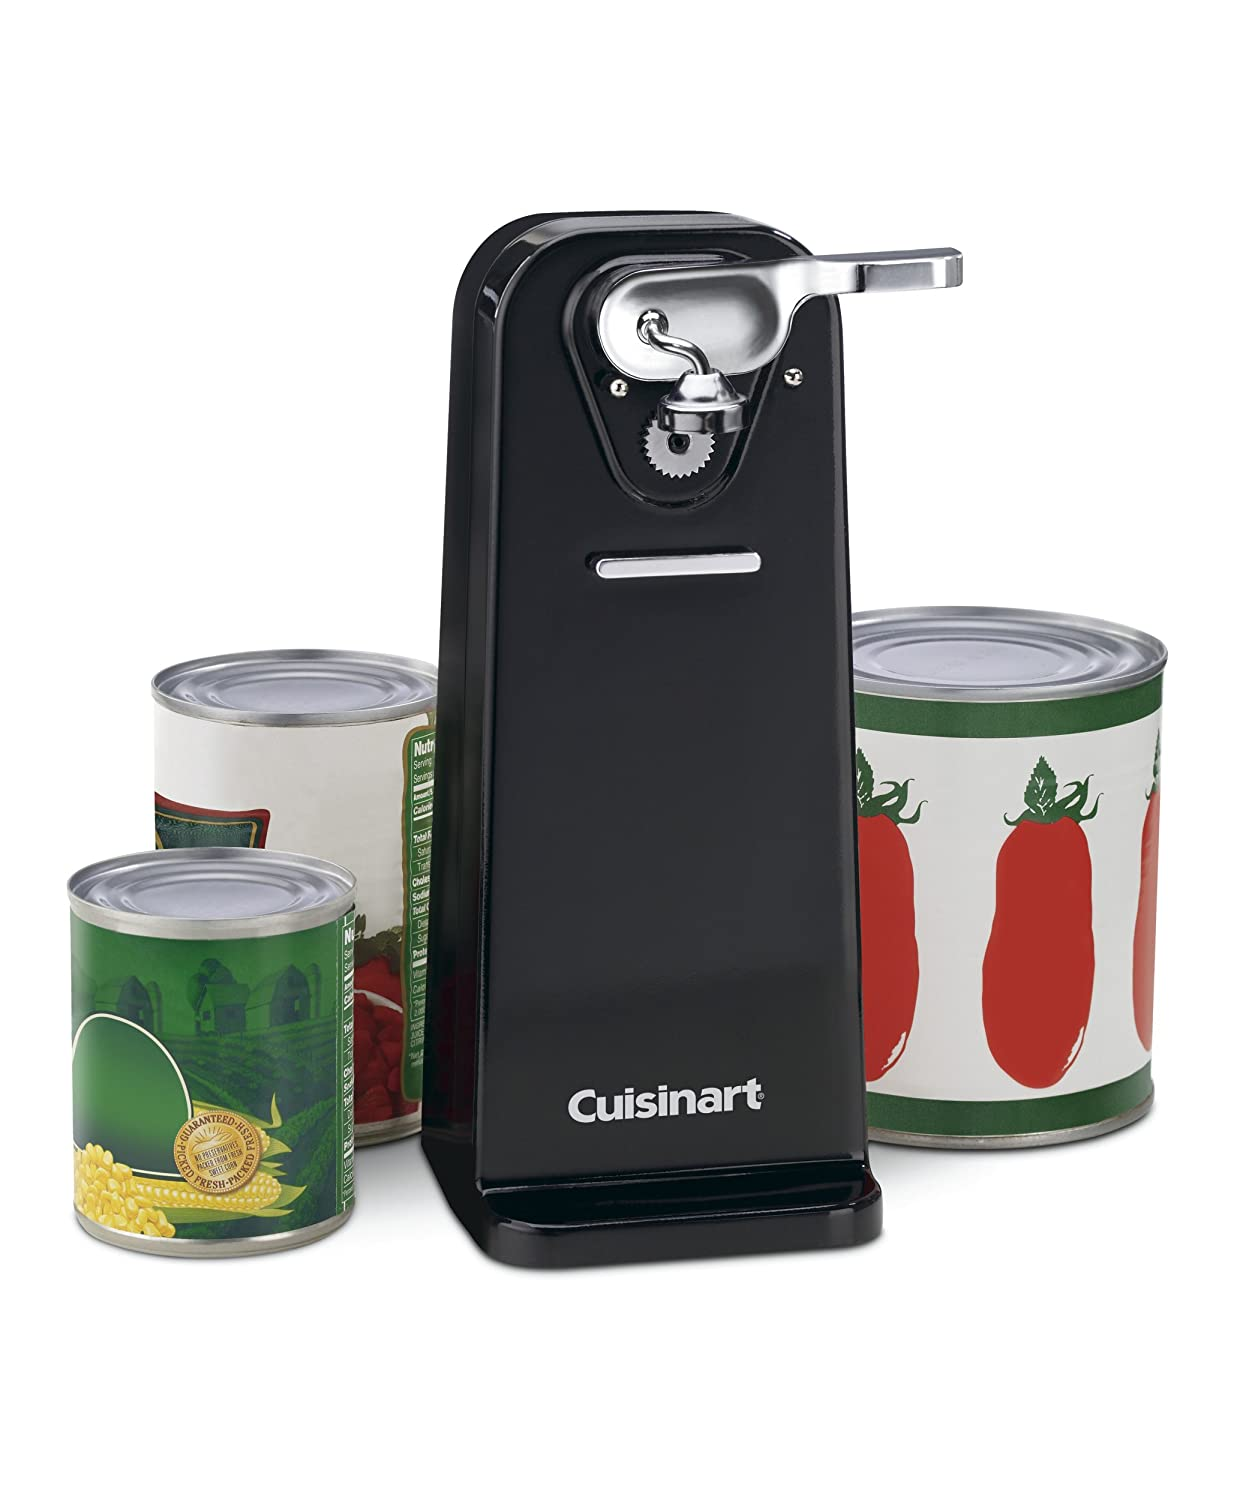 Choosing the Best Electric Can Opener